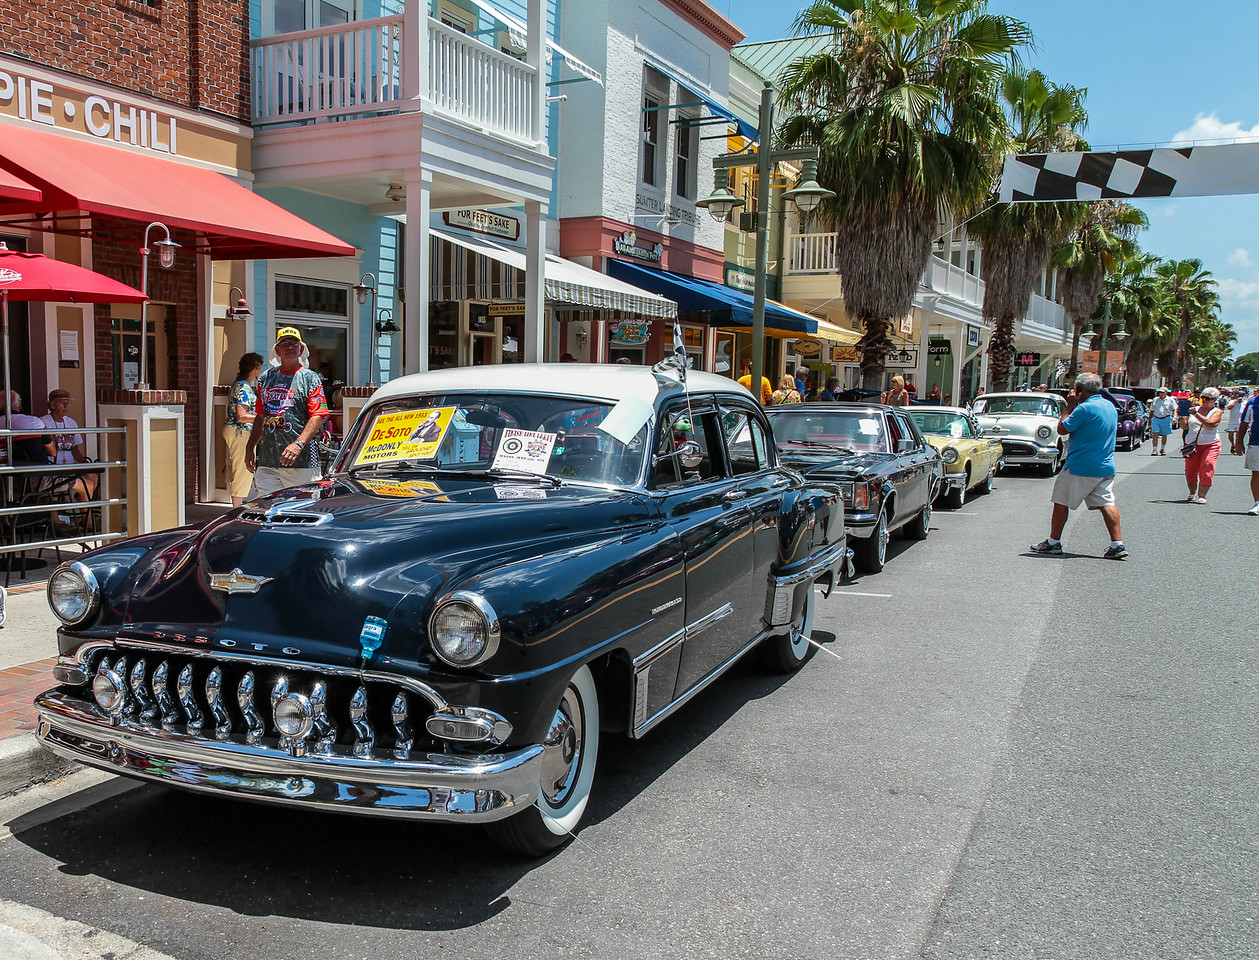 "Alan Stone's classic 1953 Desoto.  Dave Allen, President of the Villages RC Car Club walking by checking it out.  You can check out the Villages Remote Control Car Club at  <a href=""http://www.rc-cars-thevillages.com"">http://www.rc-cars-thevillages.com</a>"